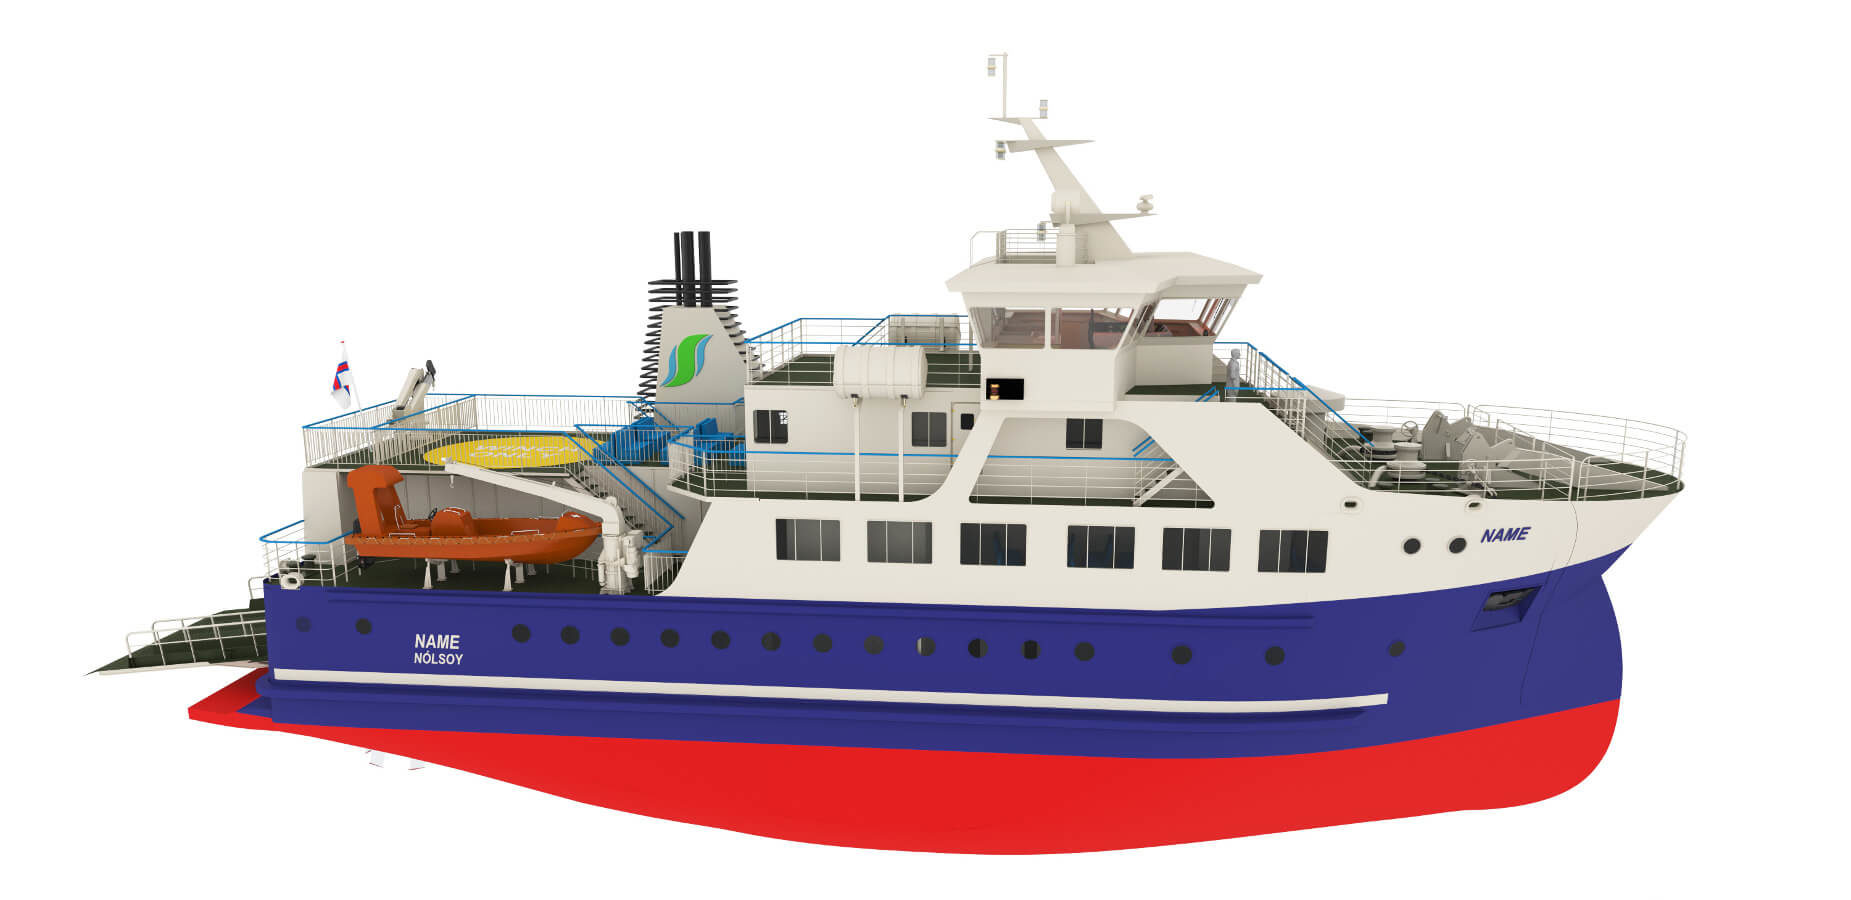 Third generation domestic ferry for service between Nólsoy